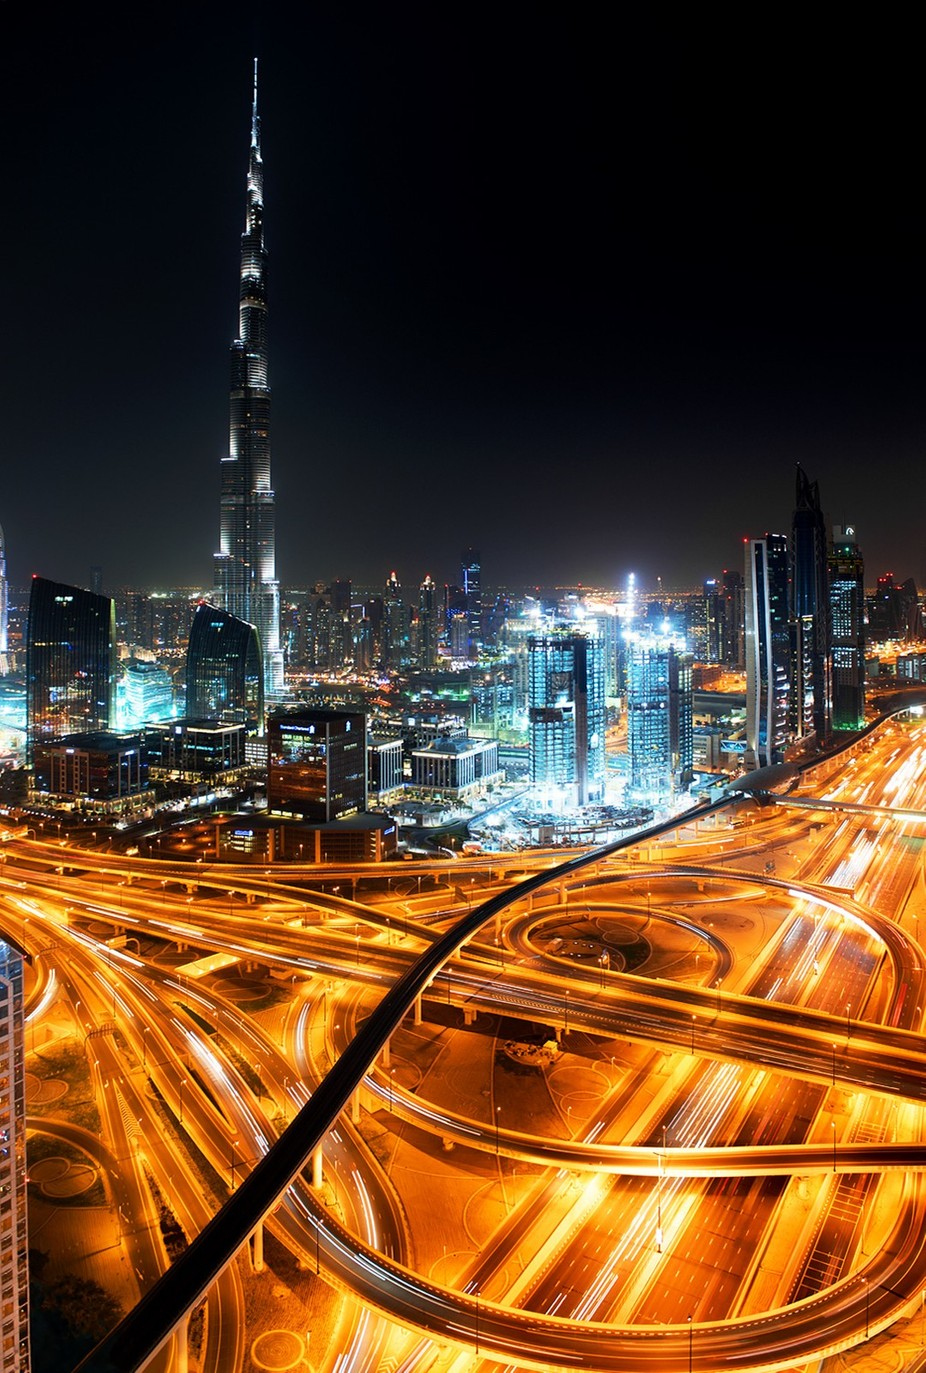 Burj Khalifa by Night by PhillipMinnis - City Views Photo Contest